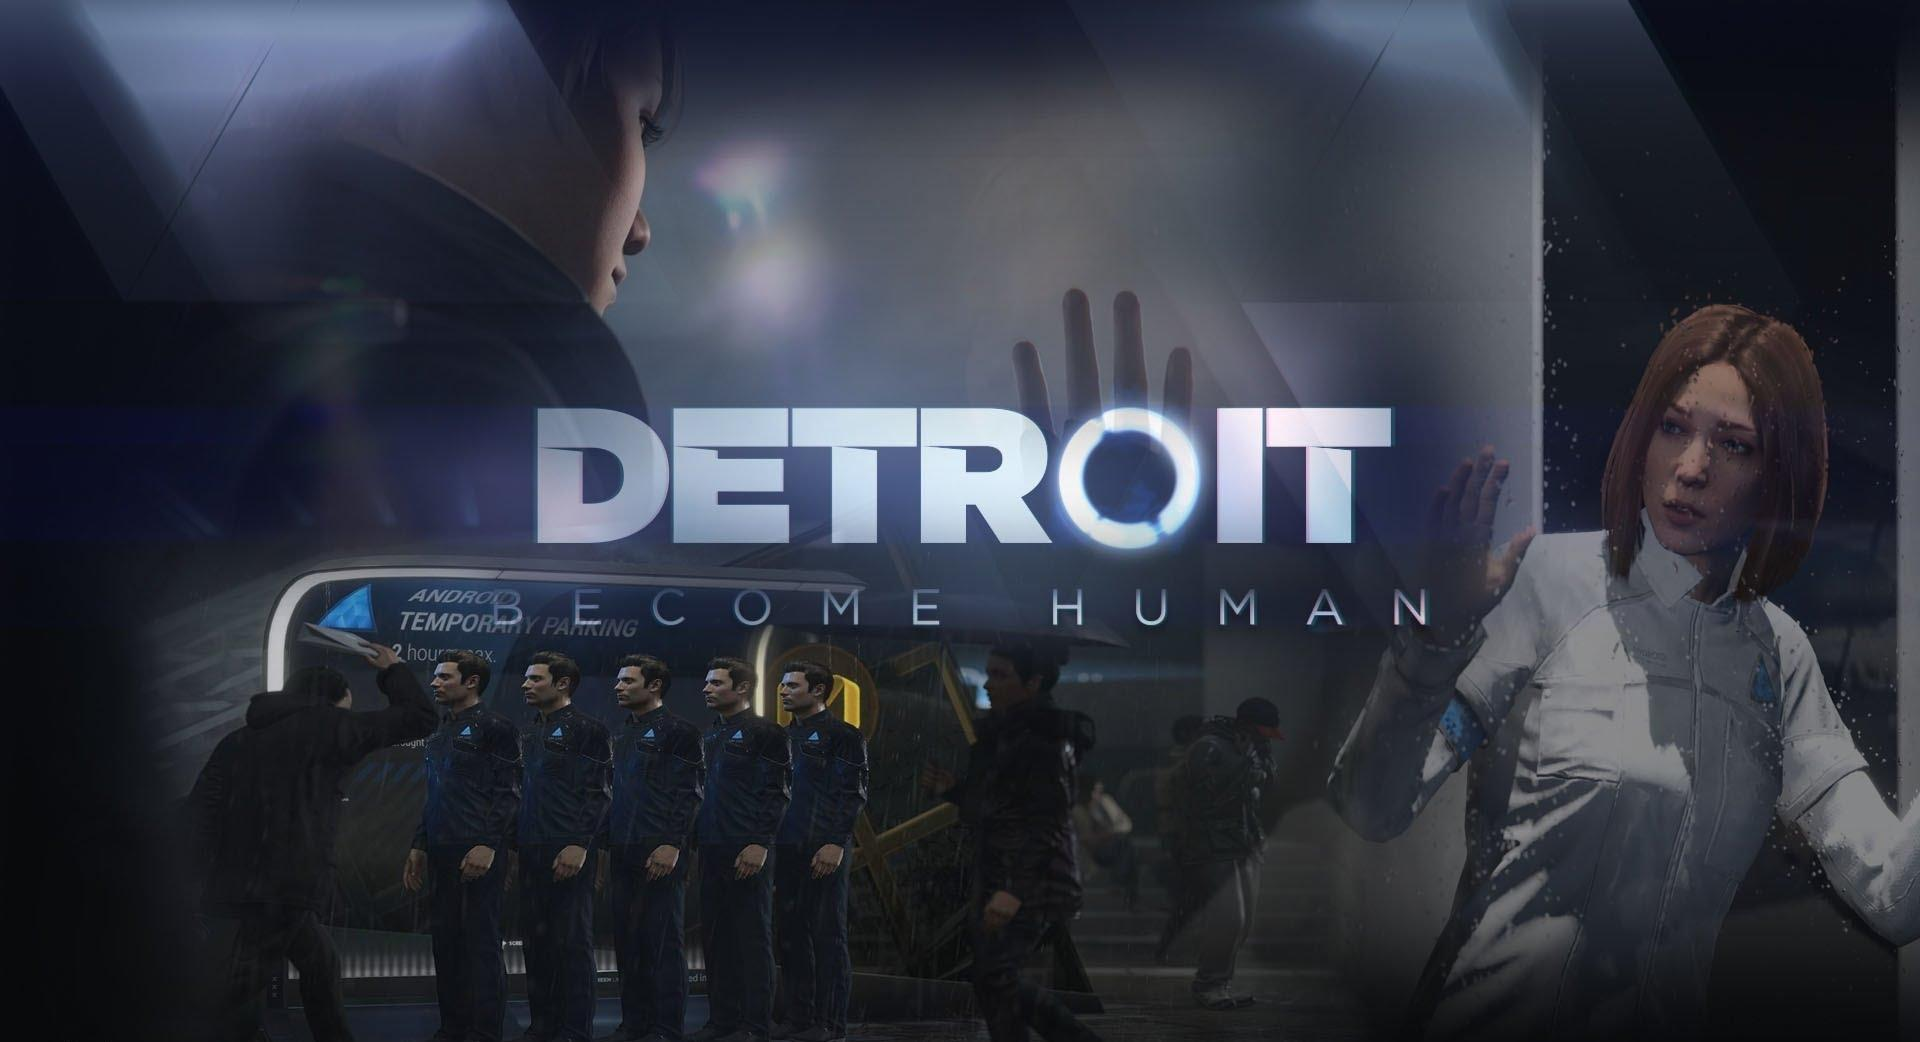 Which android from Detriot: Becoming Human do you like the most? (1)